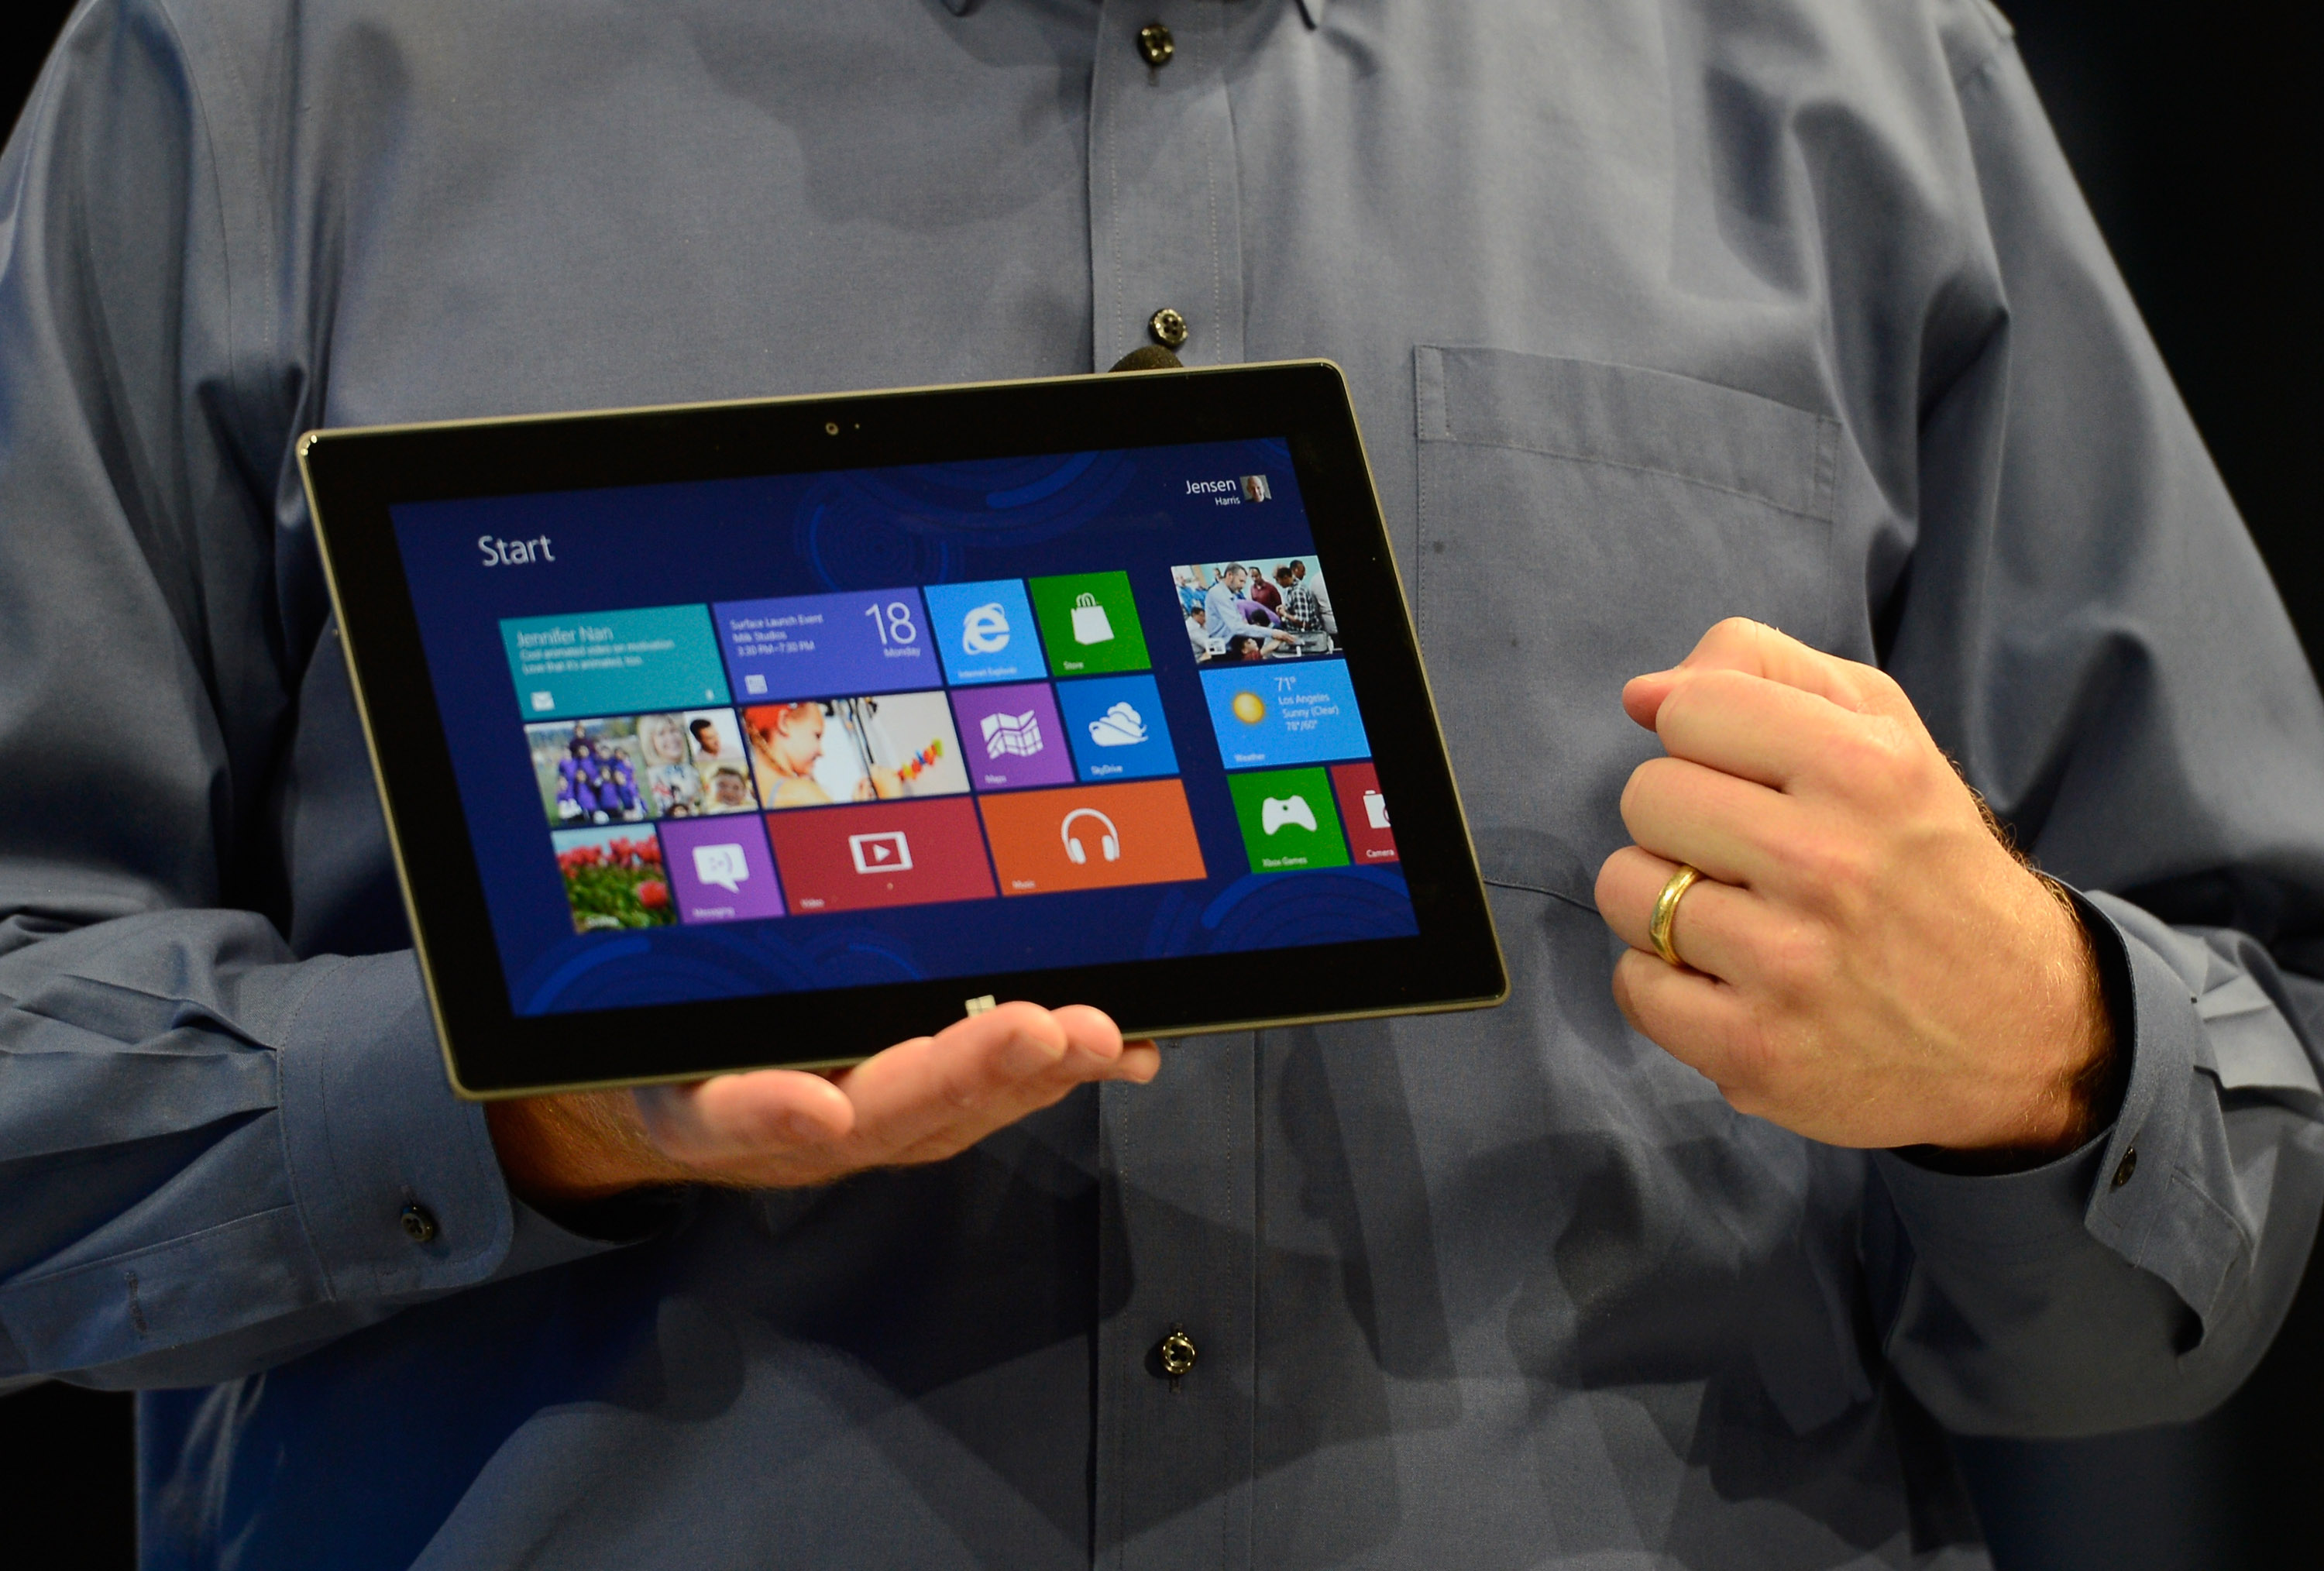 Microsoft's latest ads show the Surface beating the iPad, again